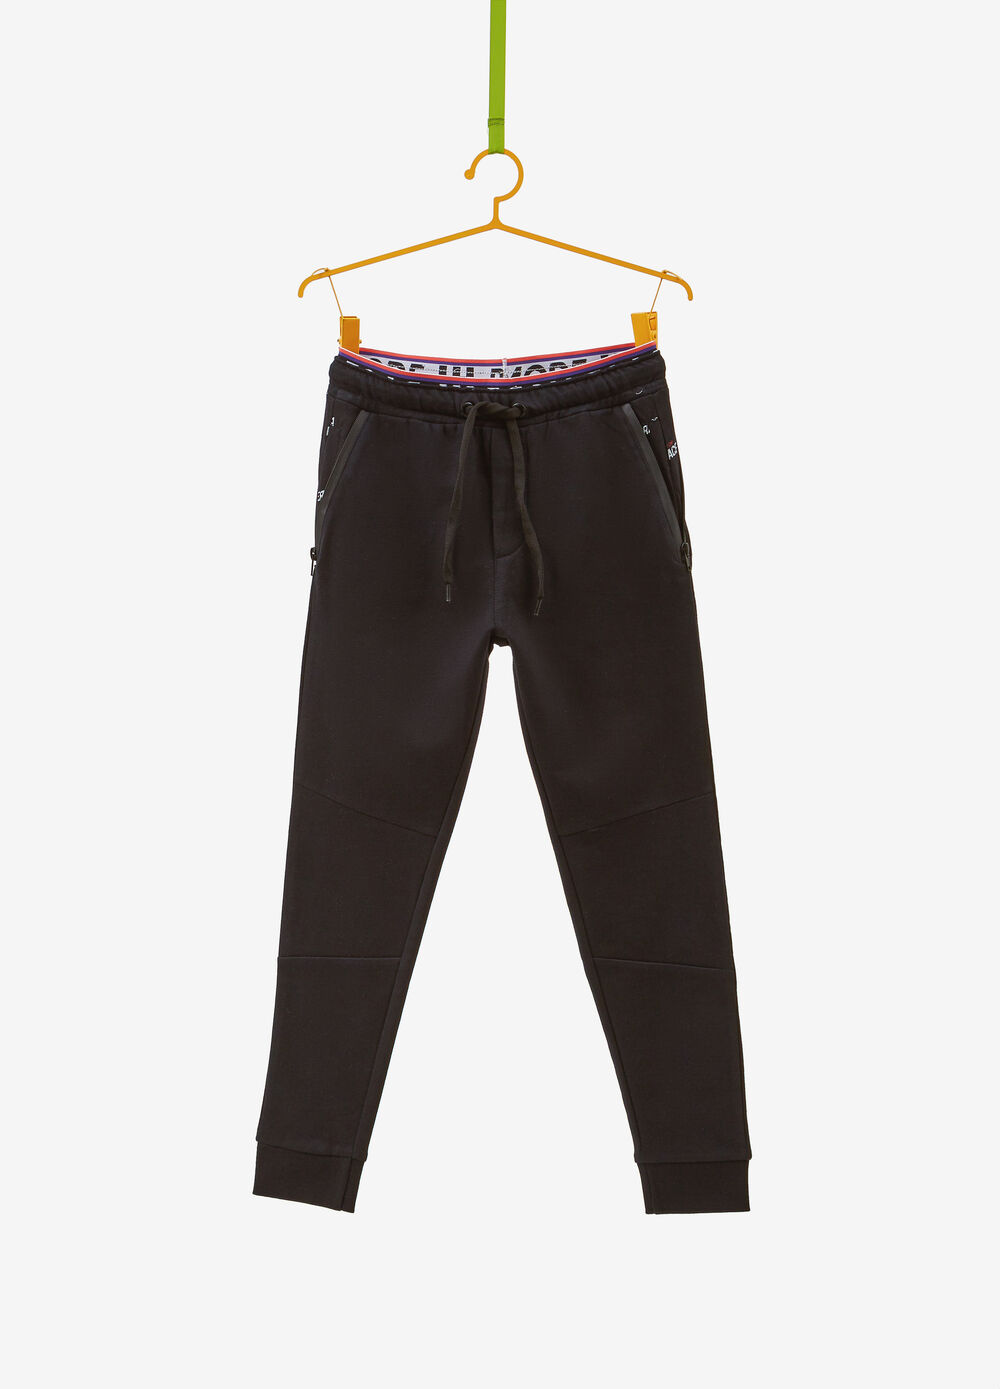 Organic cotton trousers with pockets